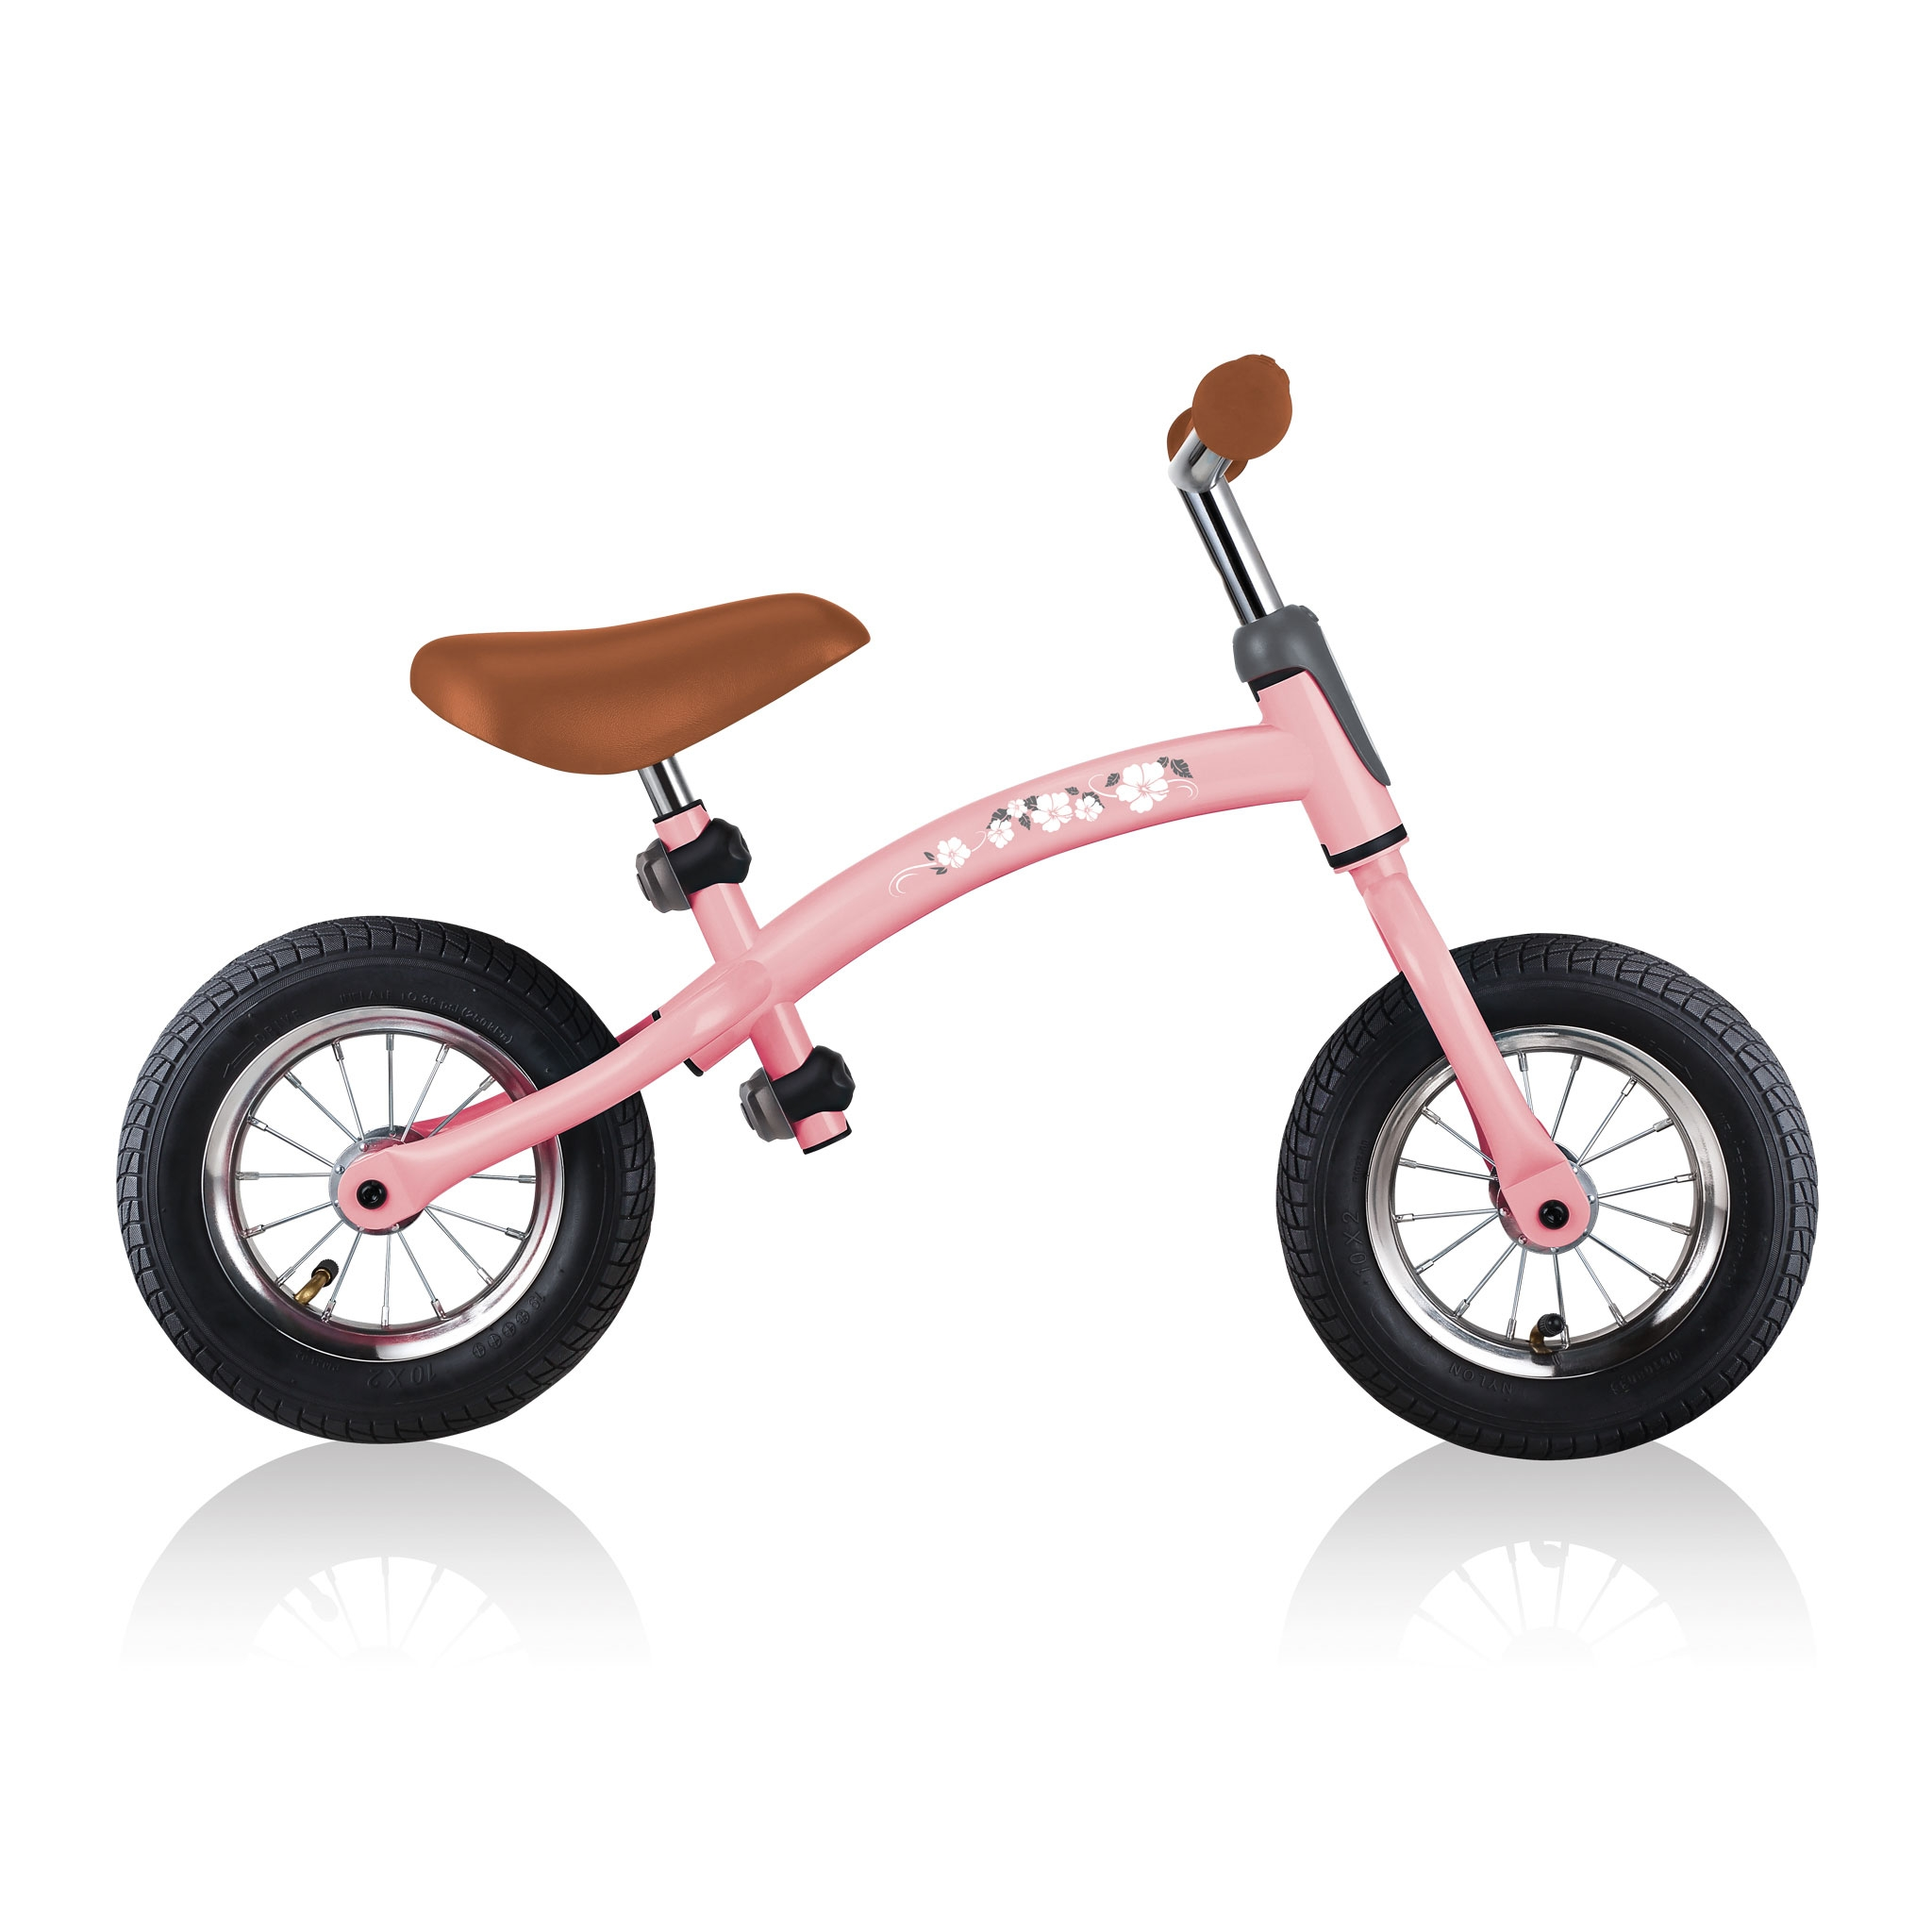 GO-BIKE-AIR-toddler-balance-bike-with-robust-steel-frame-and-shock-absorbing-rubber-tyres_pastel-pink 5